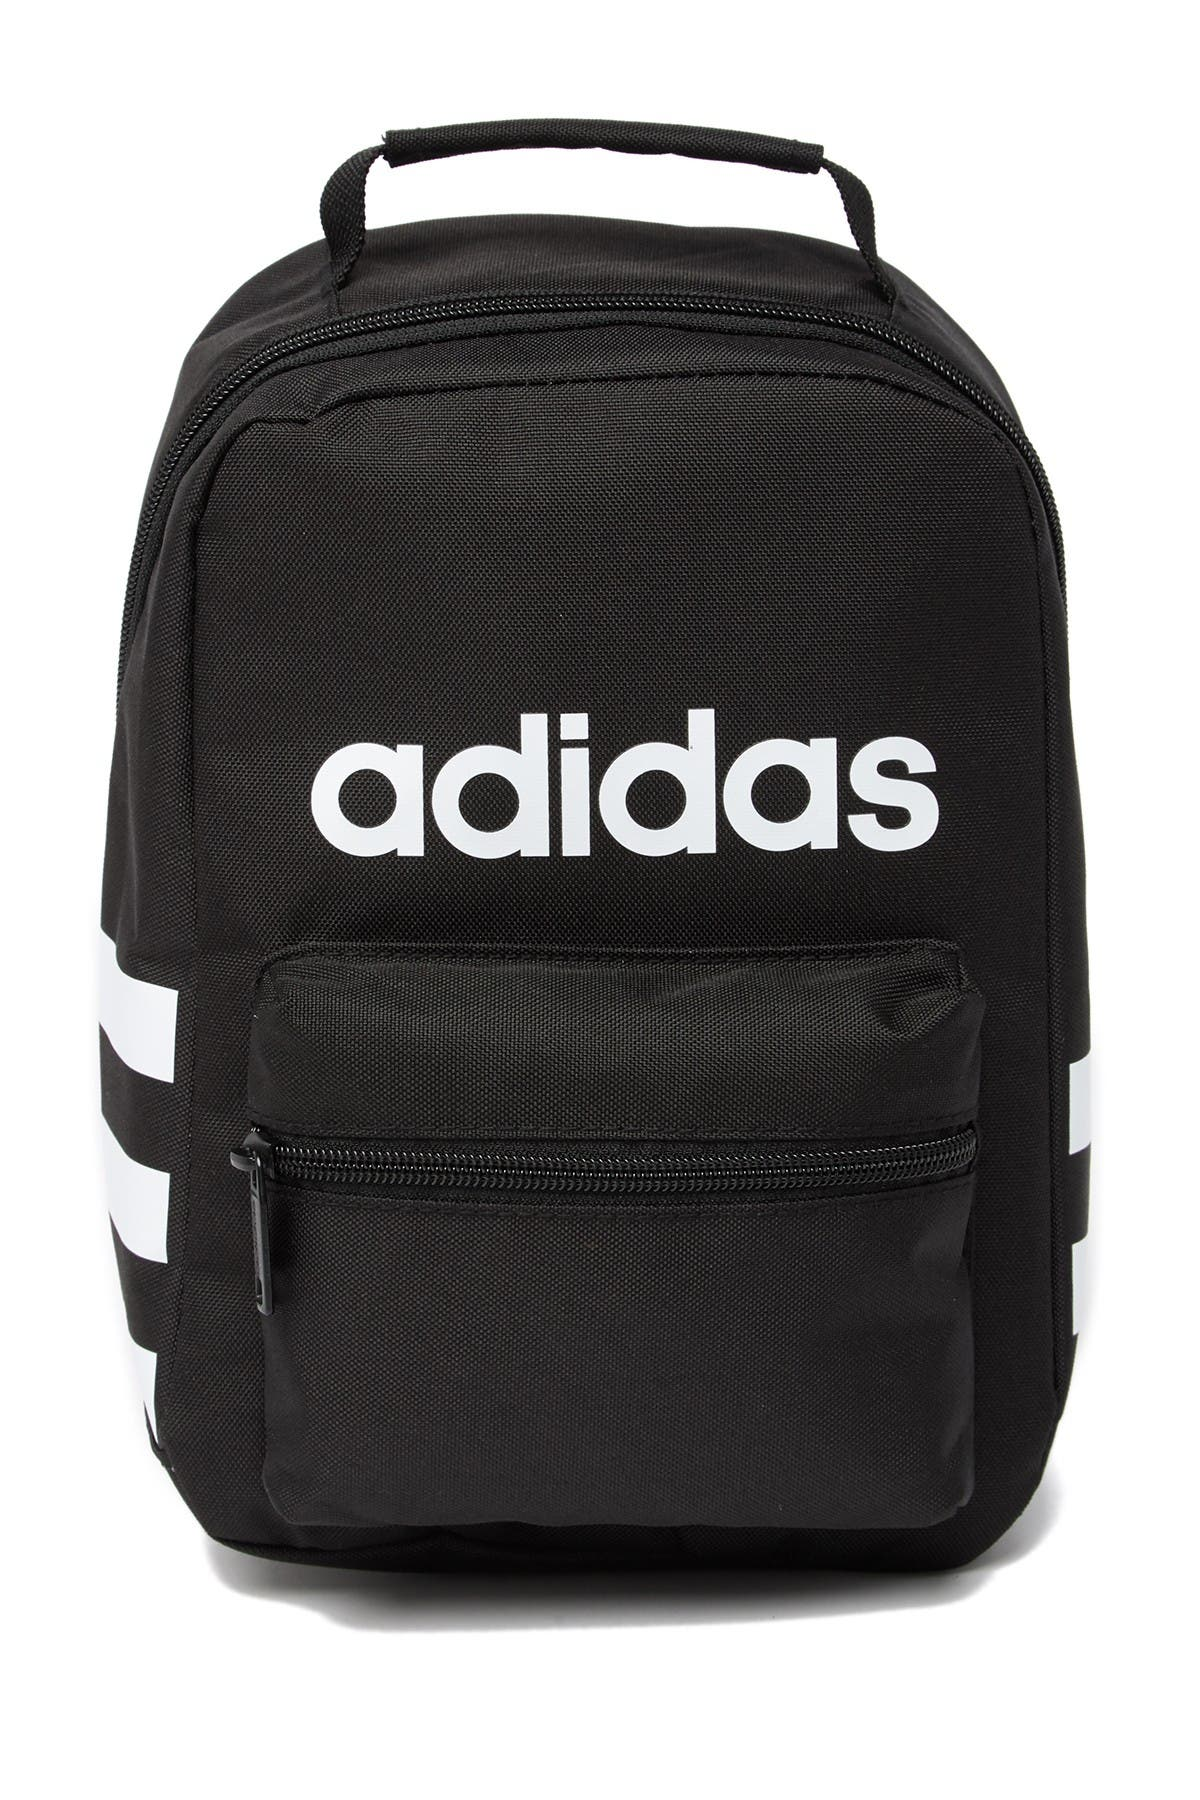 Image of adidas Santiago Lunch Box